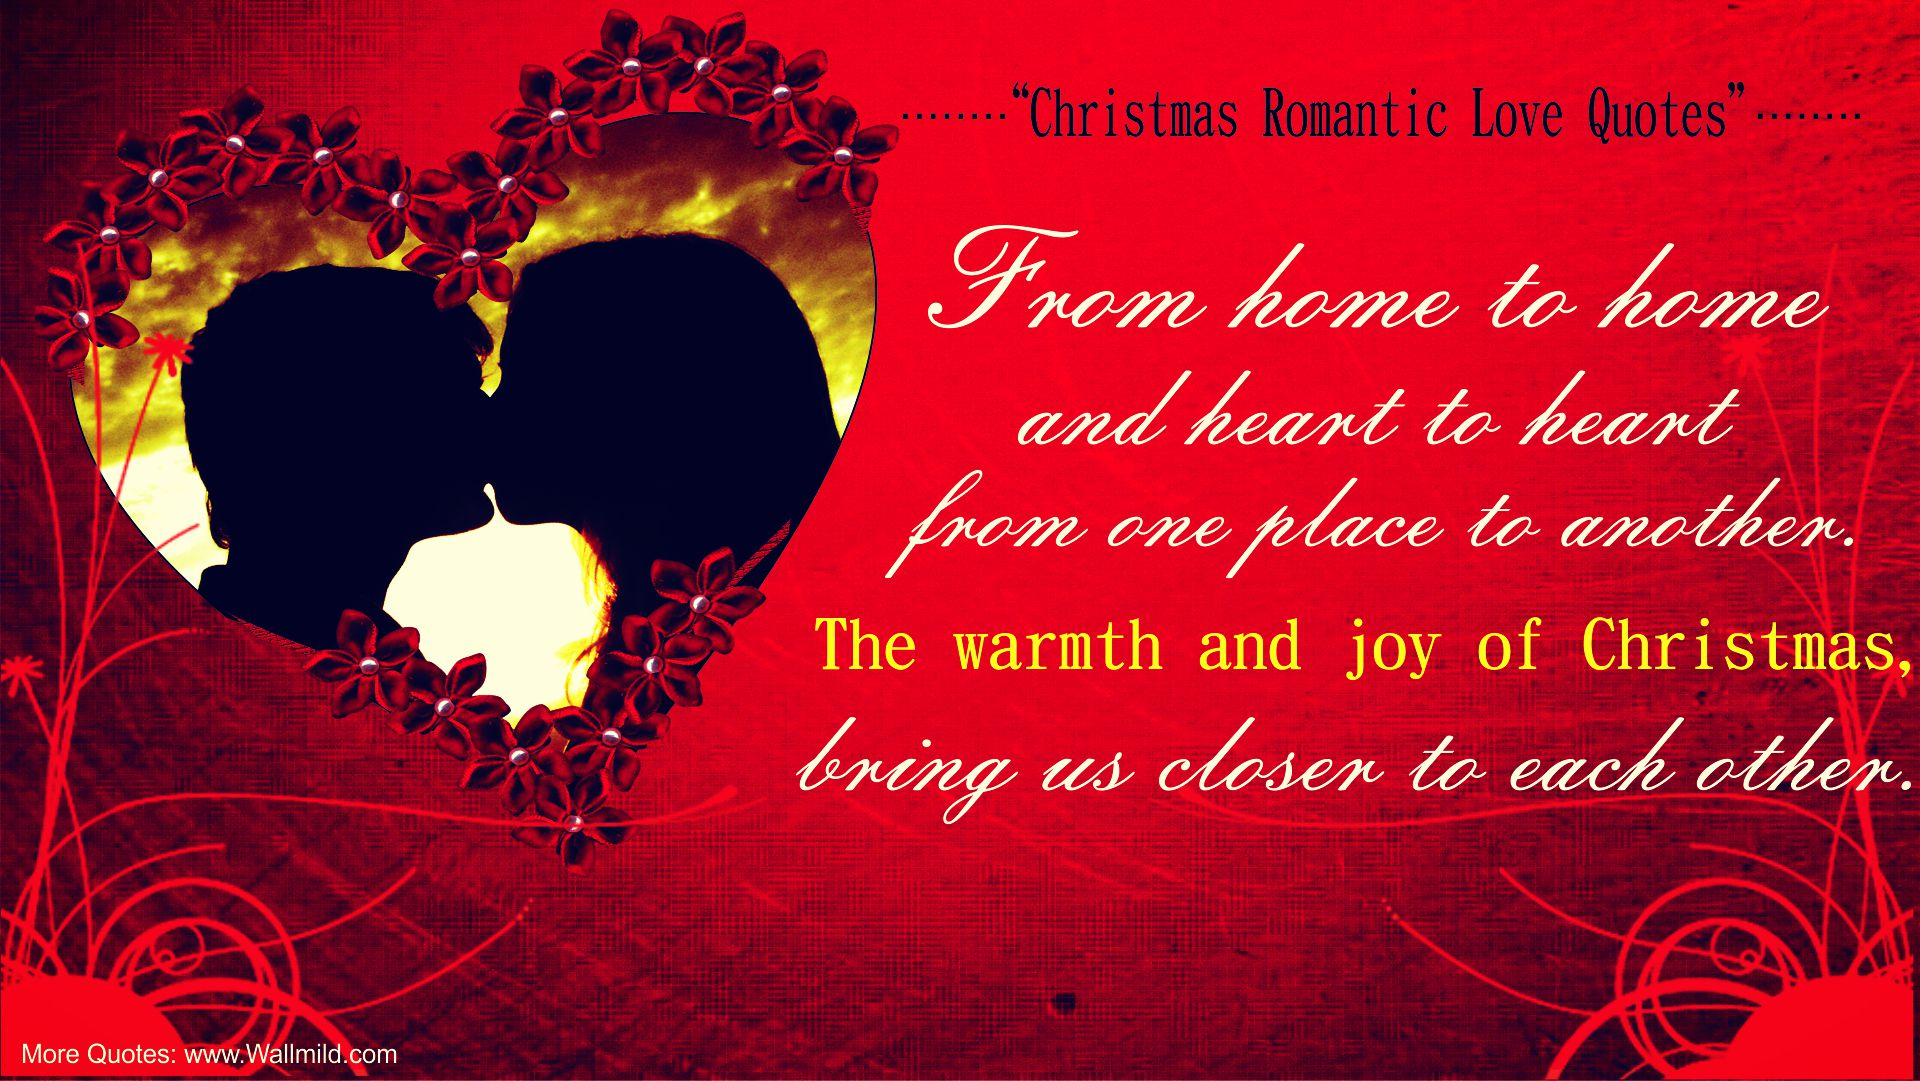 Christmas quotes for long distance relationships